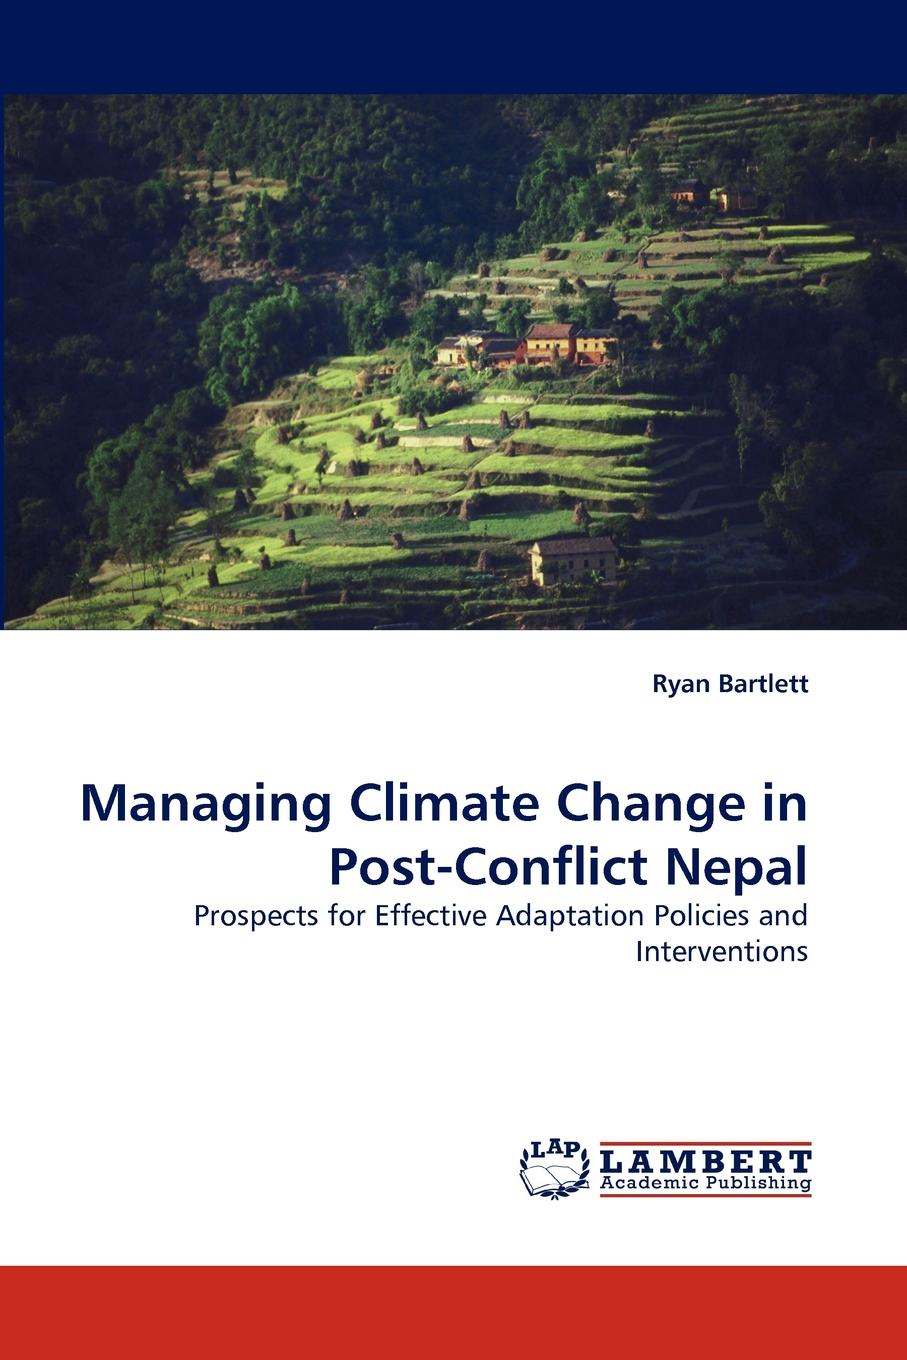 Ryan Bartlett Managing Climate Change in Post-Conflict Nepal economic adaptation to climate change